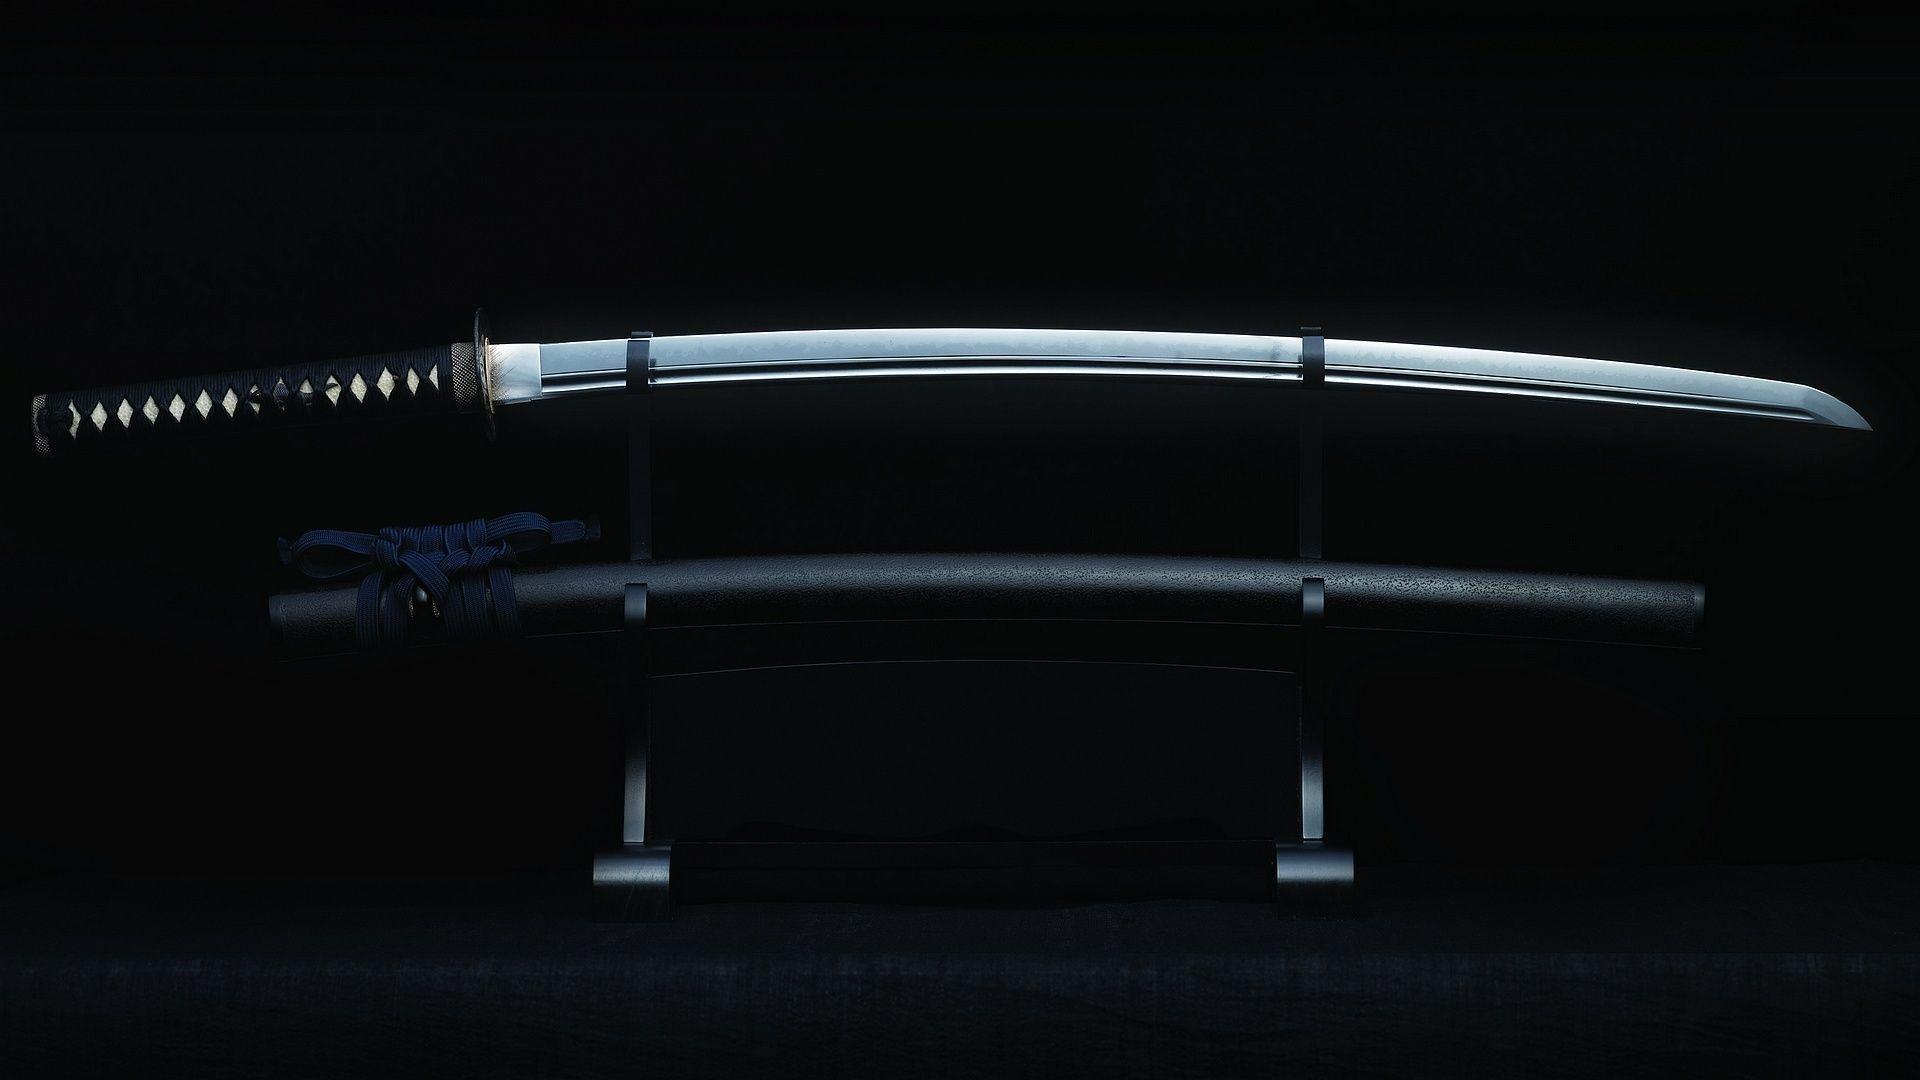 samurai katana wallpaper hd - photo #4